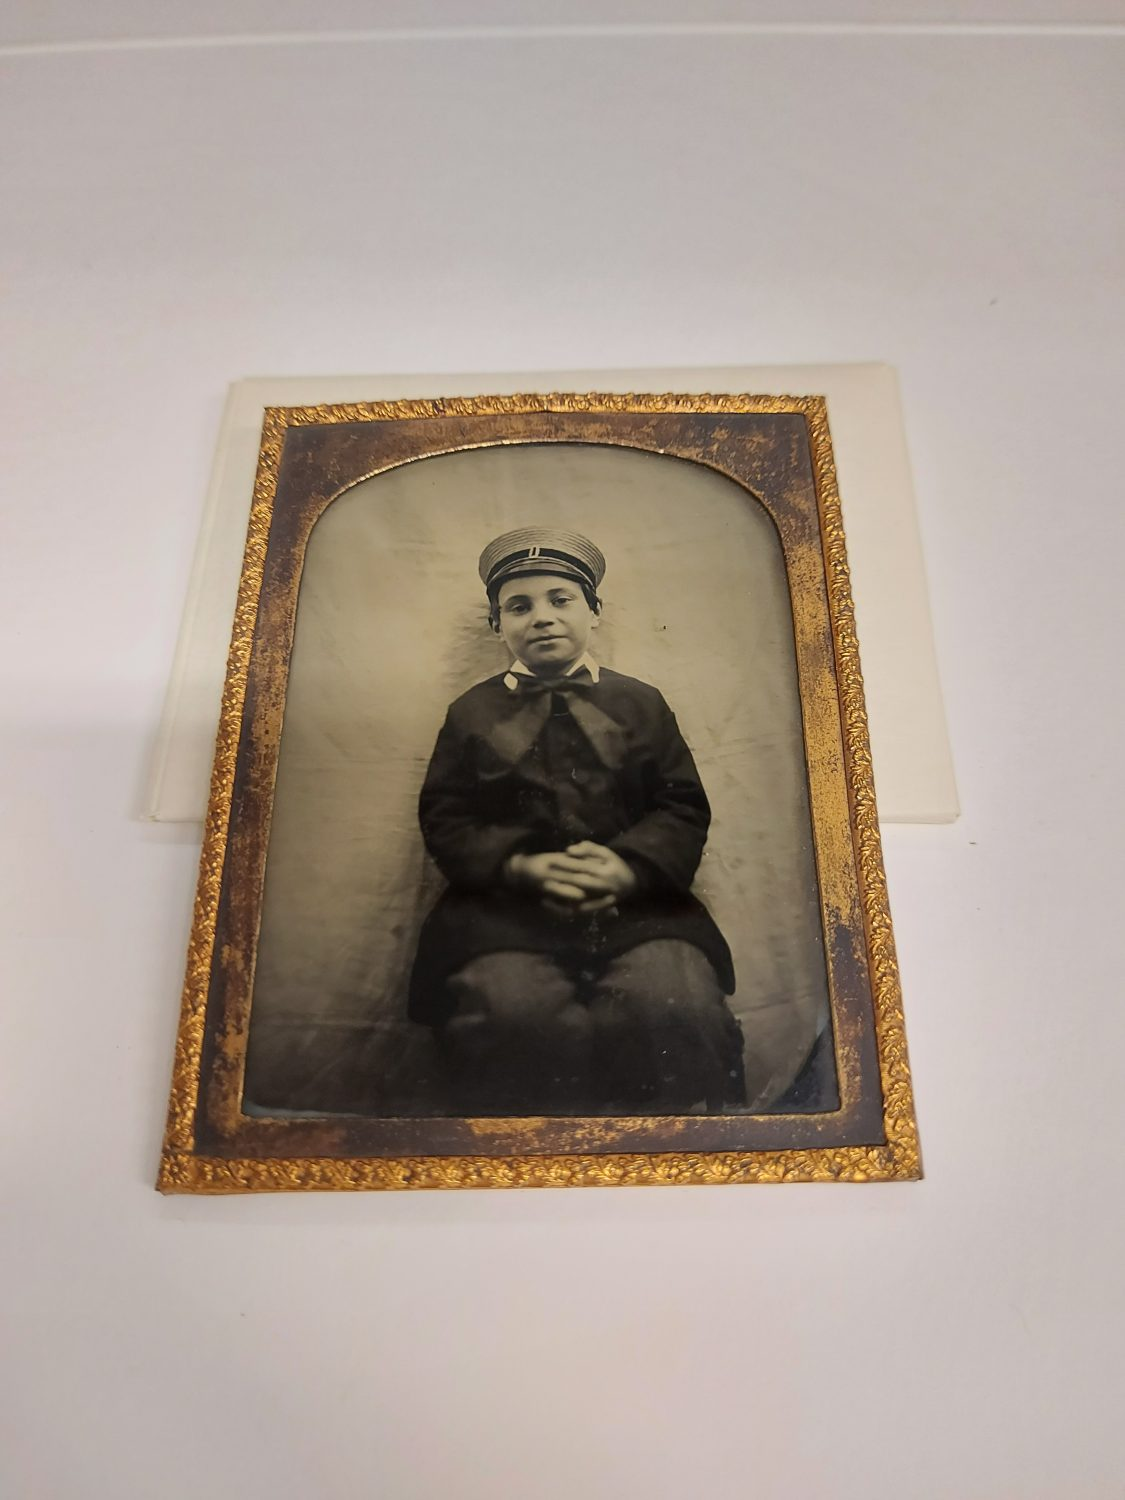 Ambrotype photograph of a young boy sitting with his hands clasped on his lap. Hes wearing a sailor type hat and suite. Photograph is black and white glass negative in gold frame